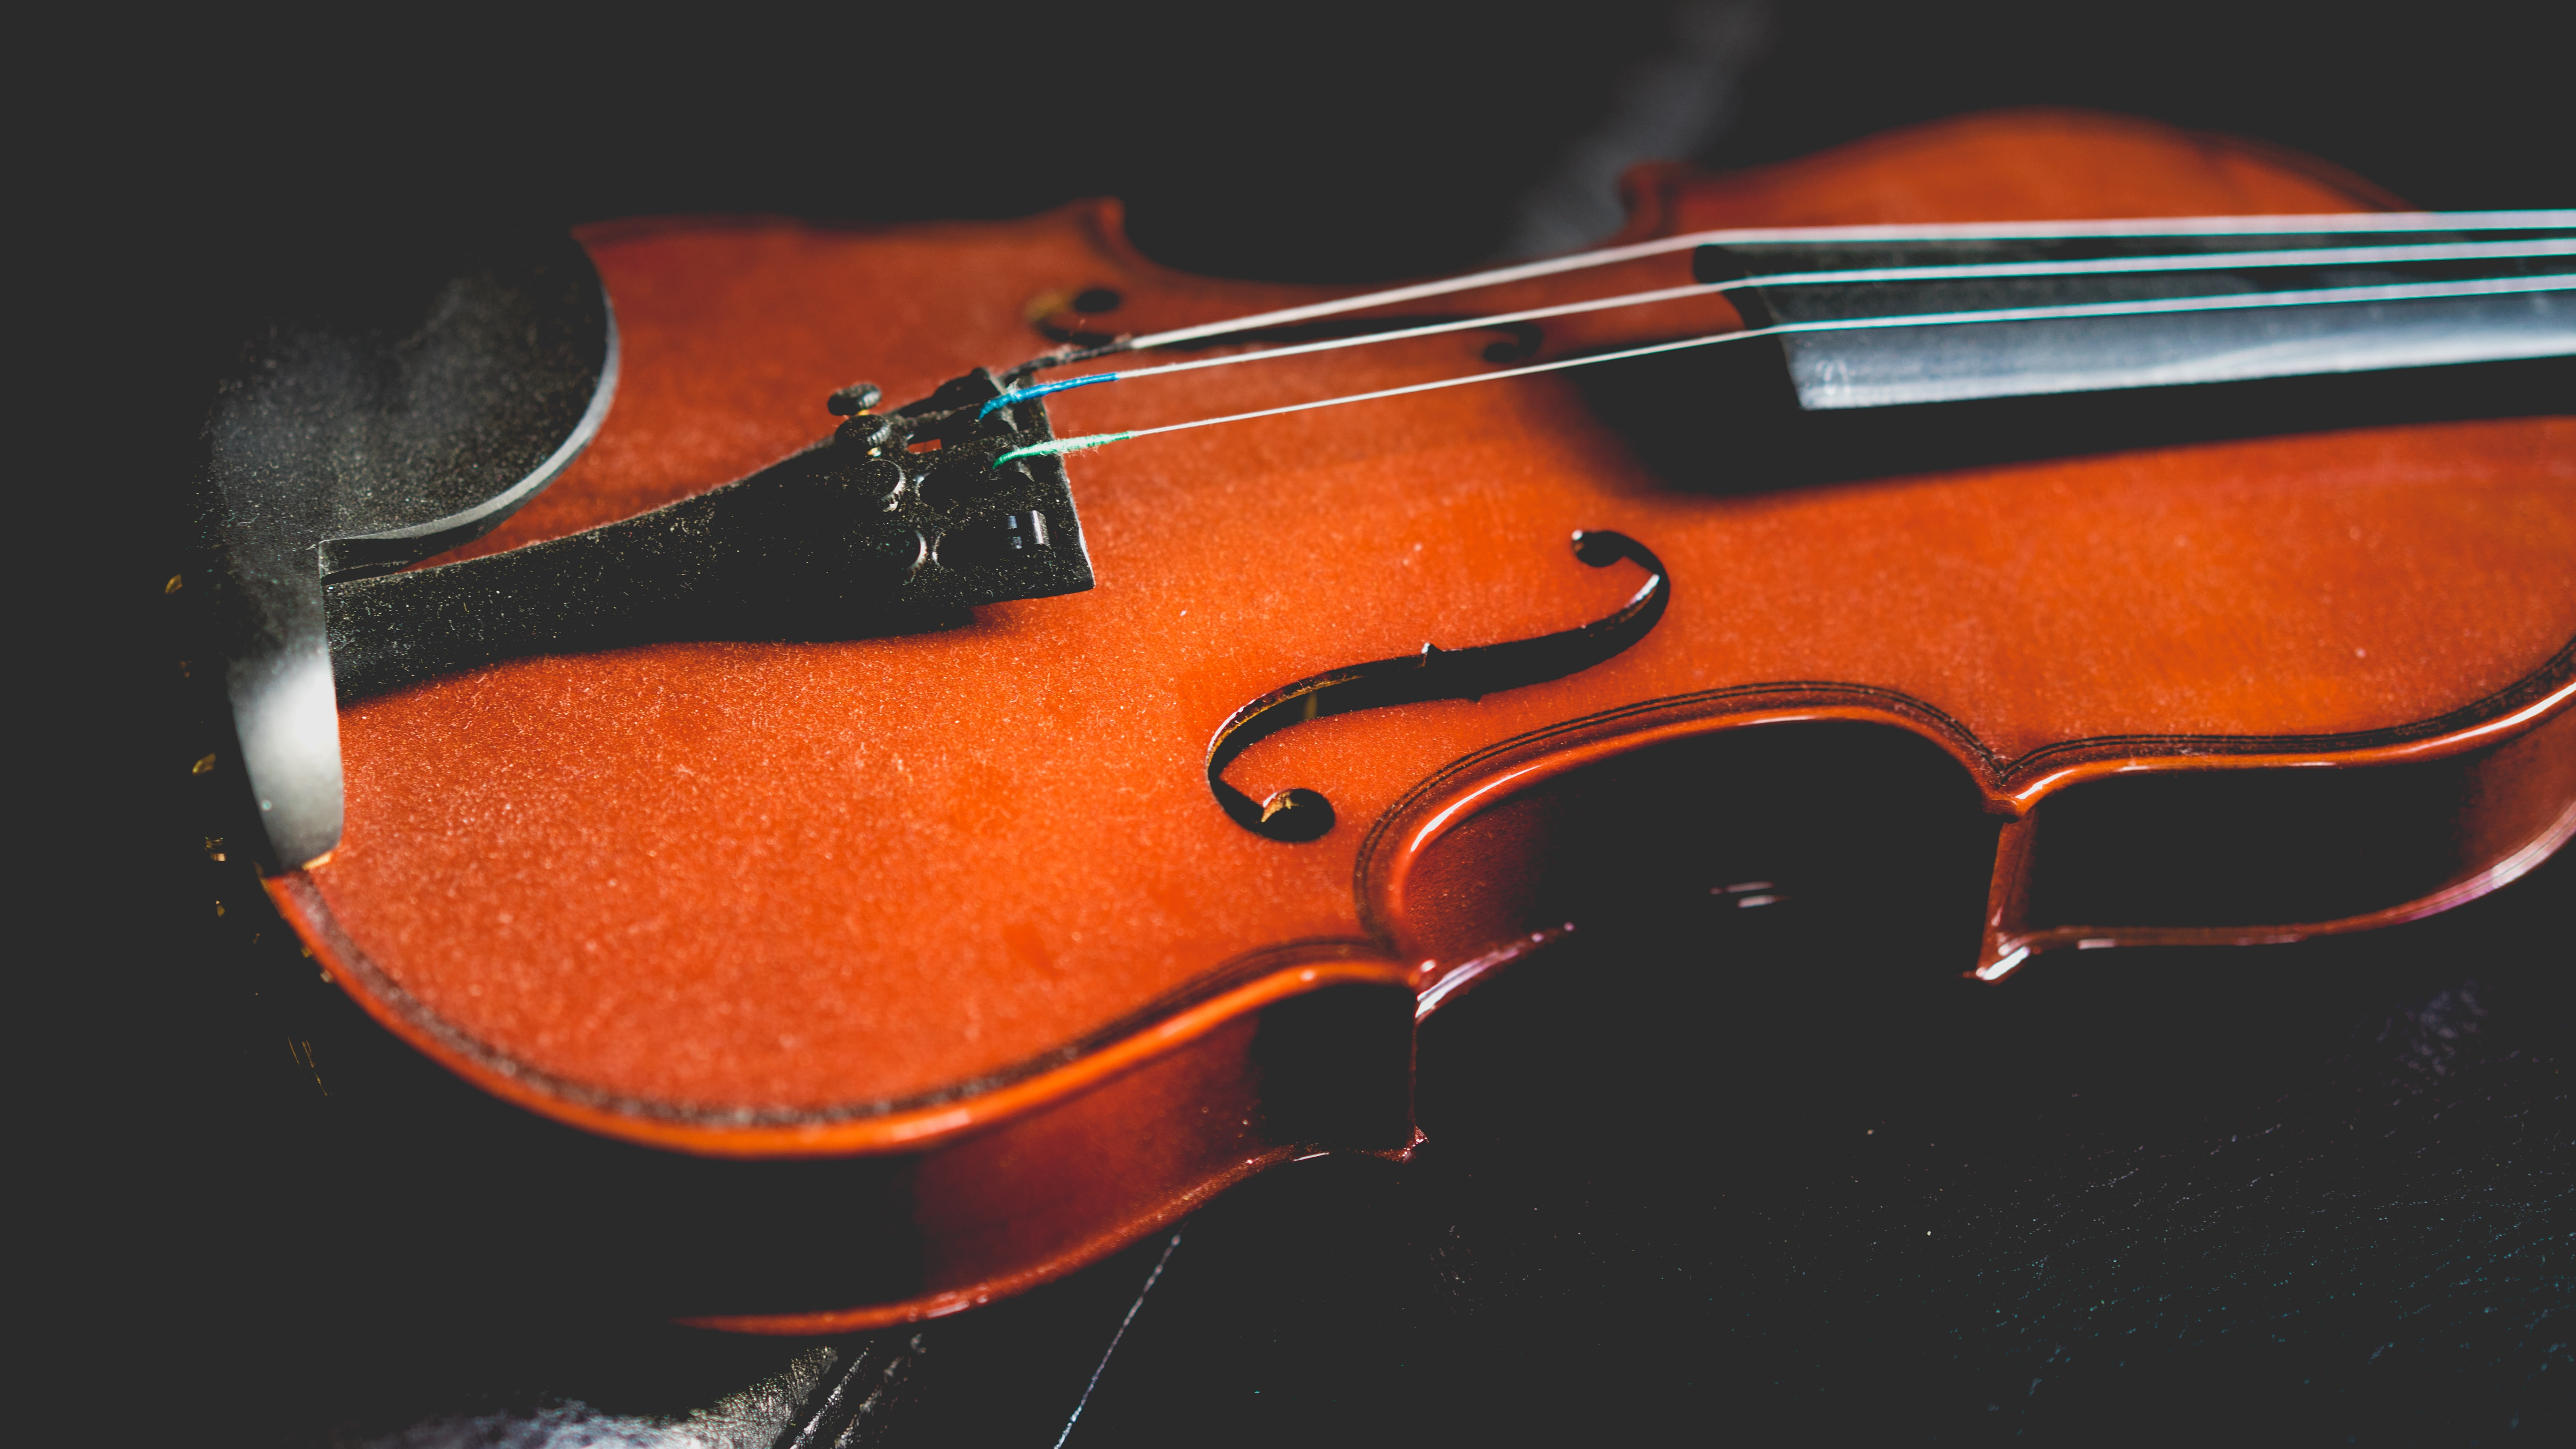 A close-up of a violin covered with dust